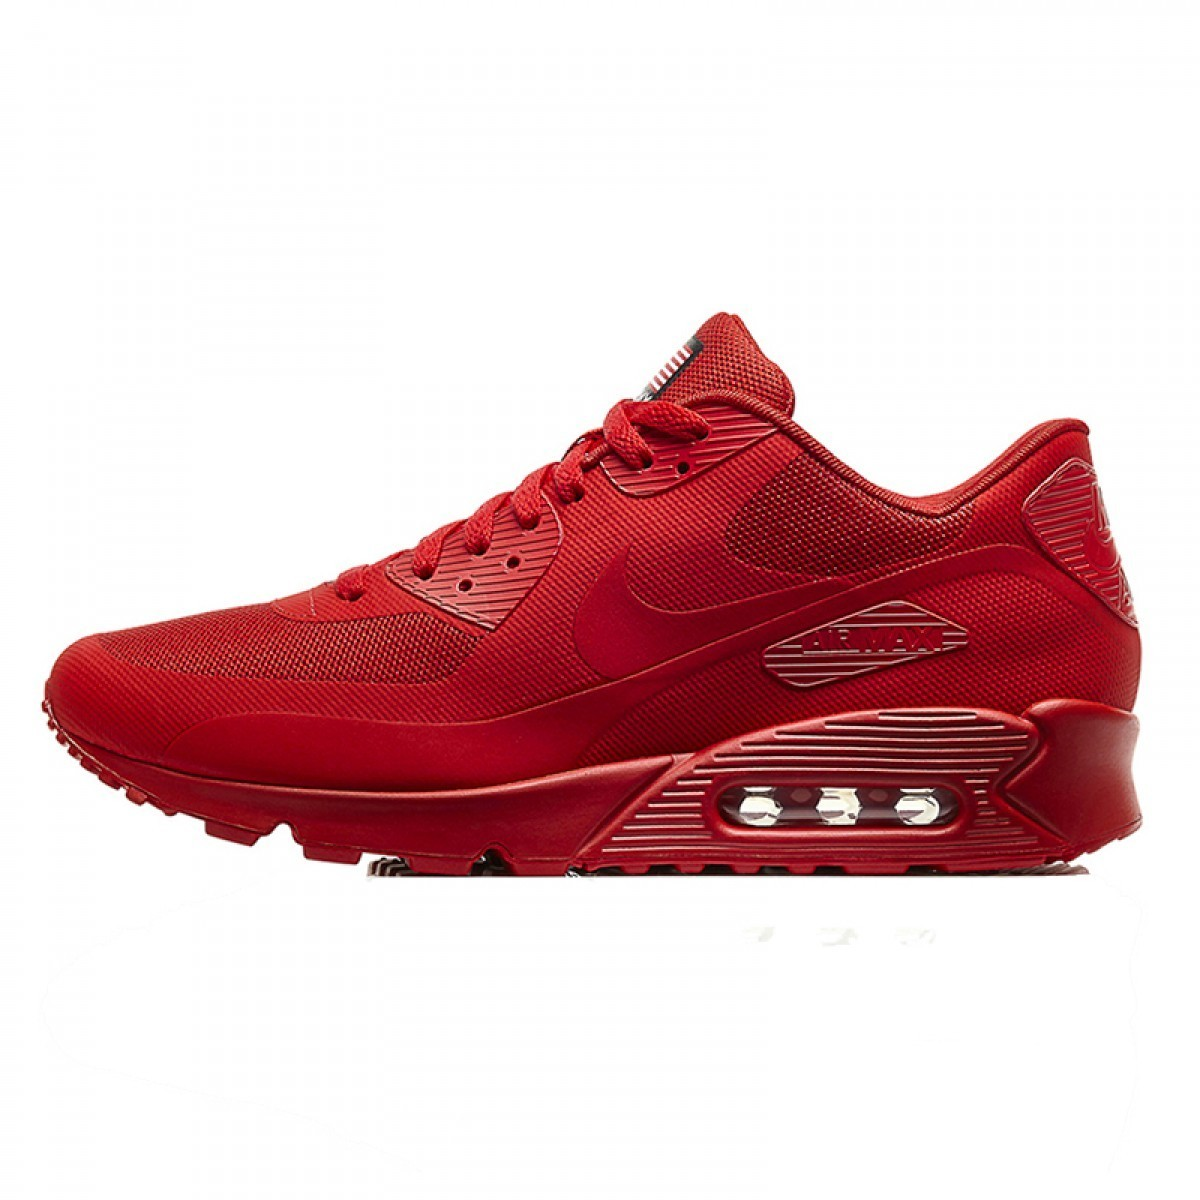 Nike Air Max 90 Hyperfuse 'Independence Day' Rouge à Prix Incroyables - Nike Air Max 90 Hyperfuse 'Independence Day' Rouge à Prix Incroyables-31